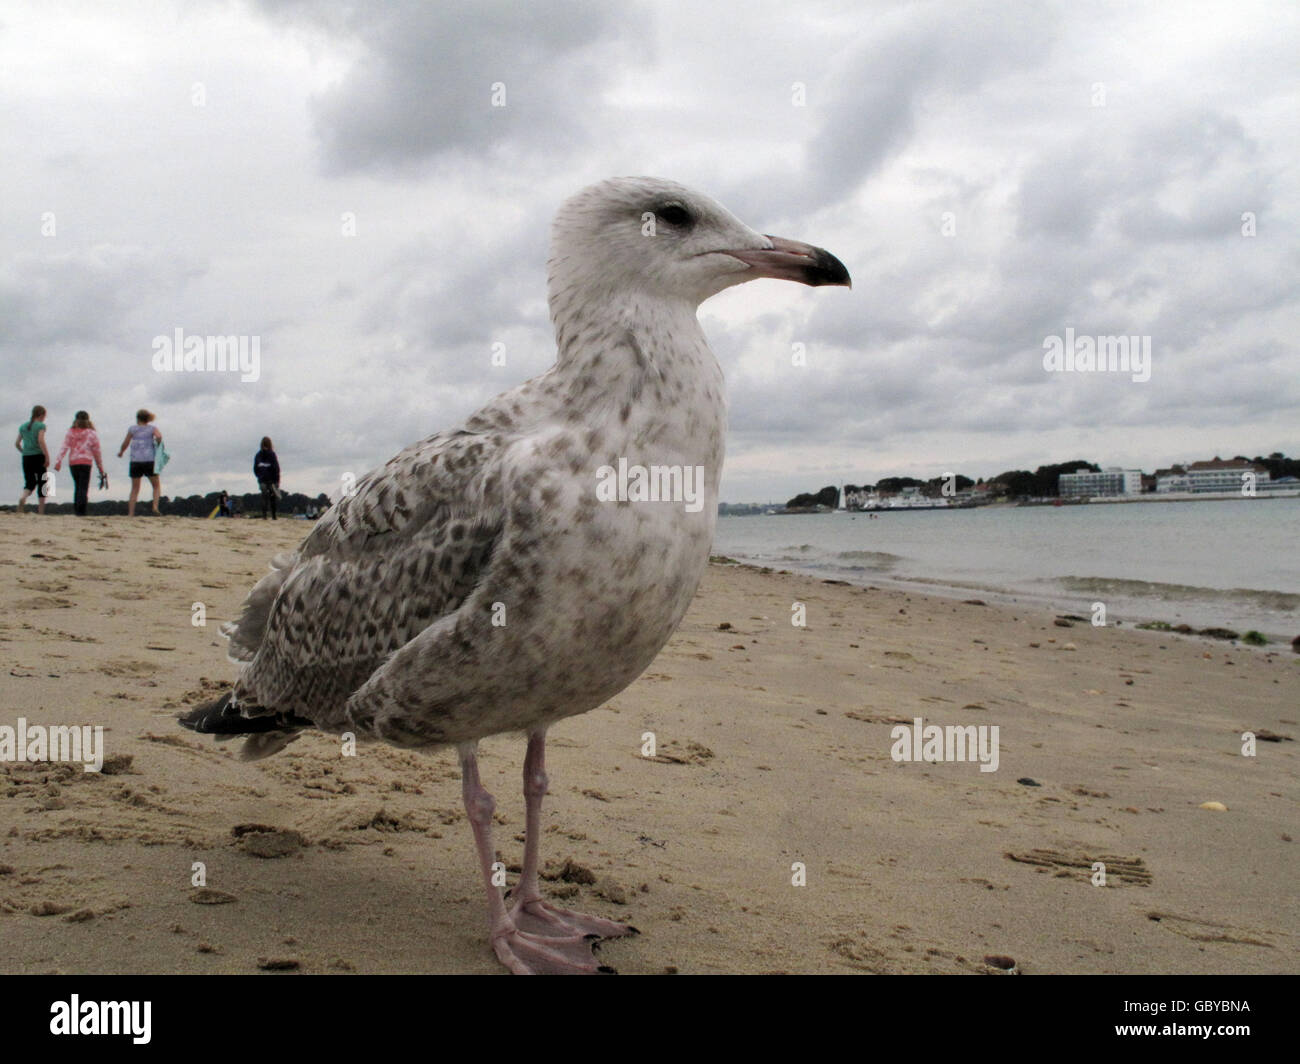 Baby Seagull Stock Photos & Baby Seagull Stock Images - Alamy